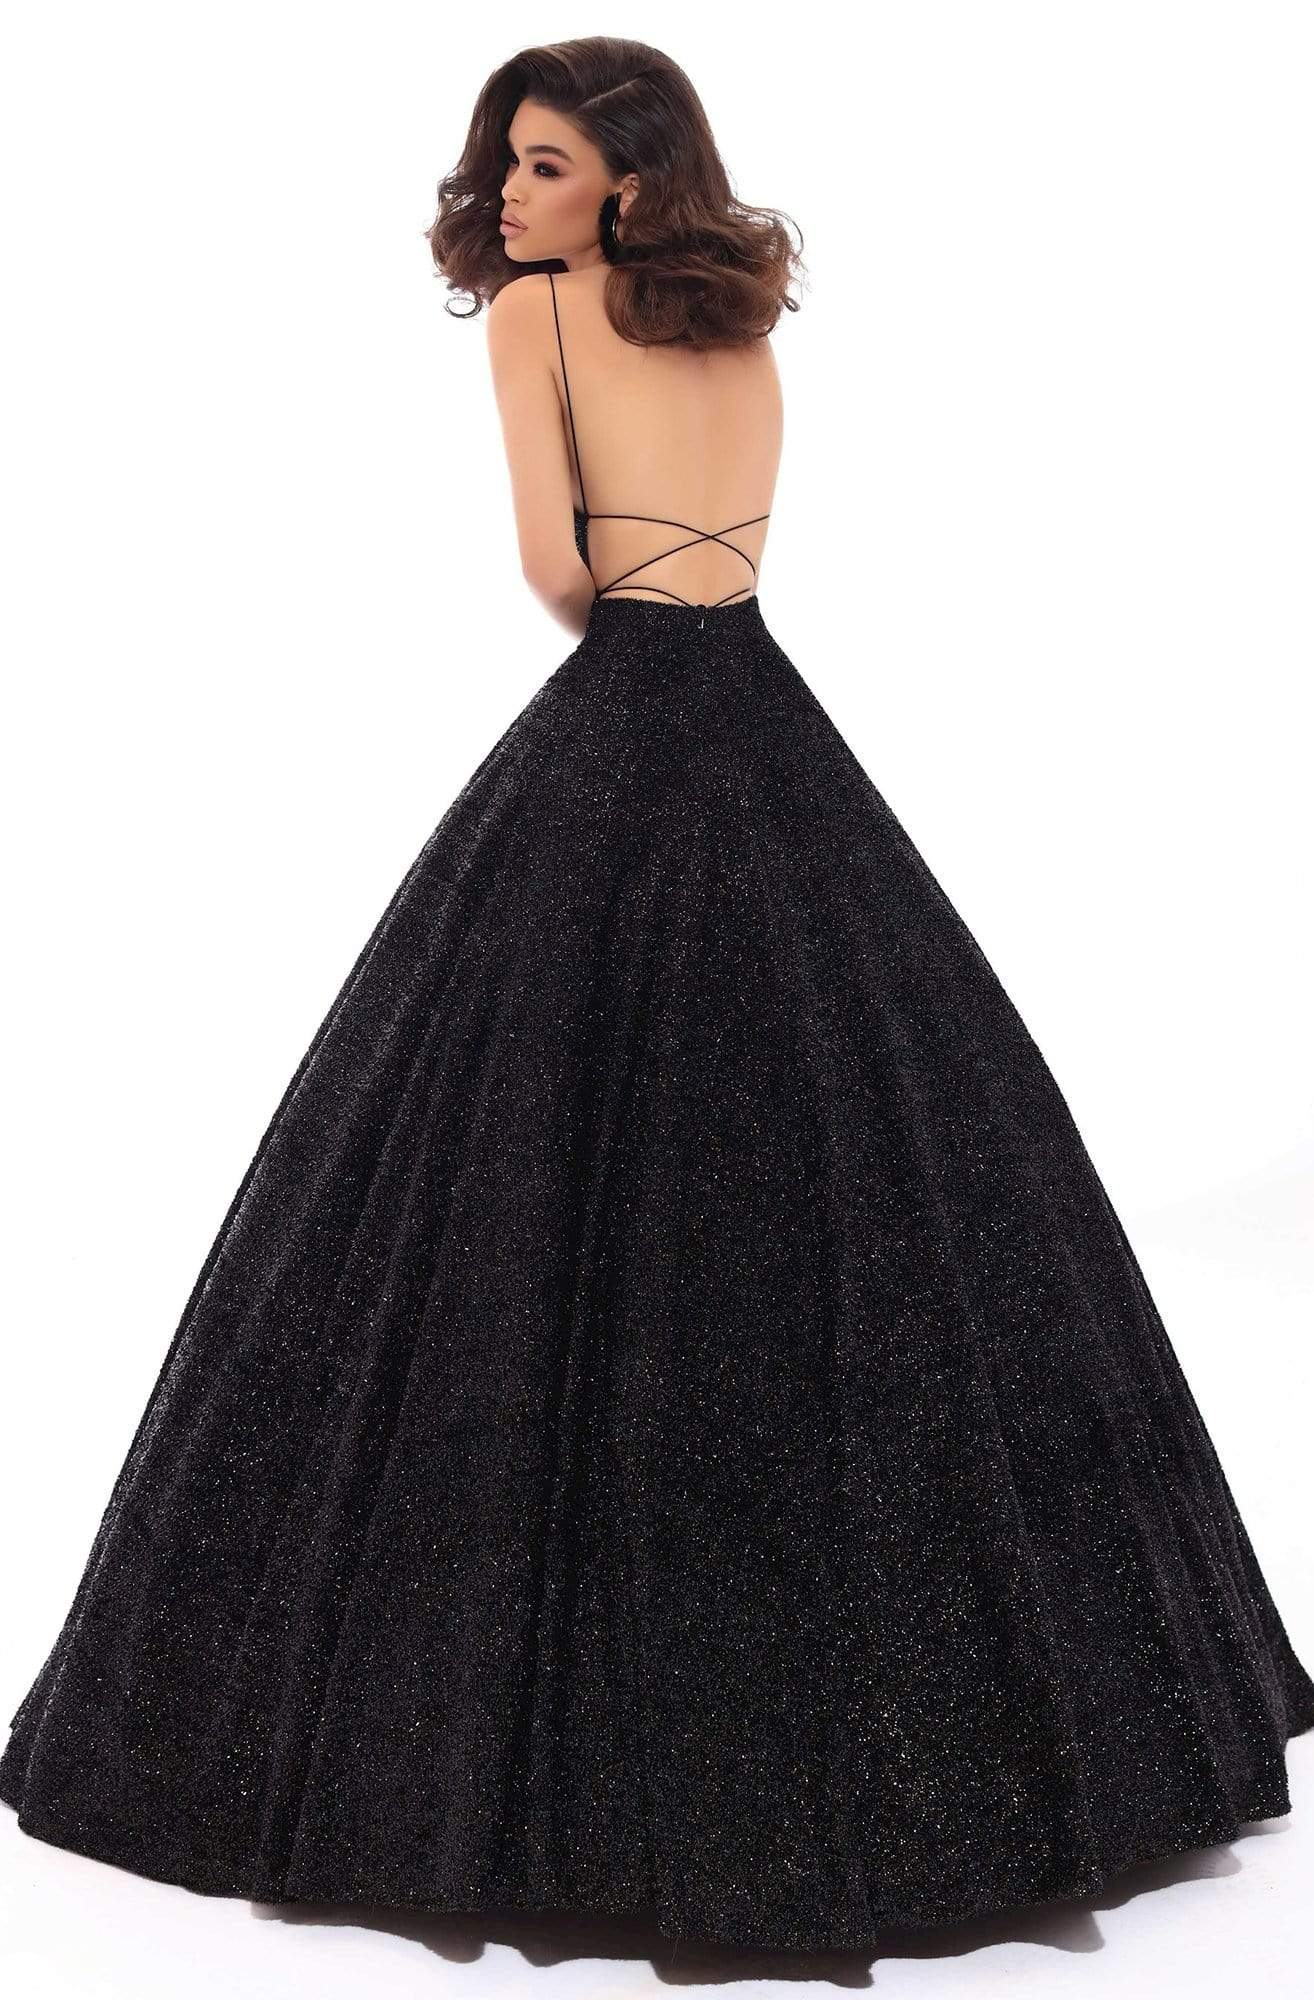 Tarik Ediz - 93690 Illusion Plunging Backless Sparkly Ballgown Special Occasion Dress